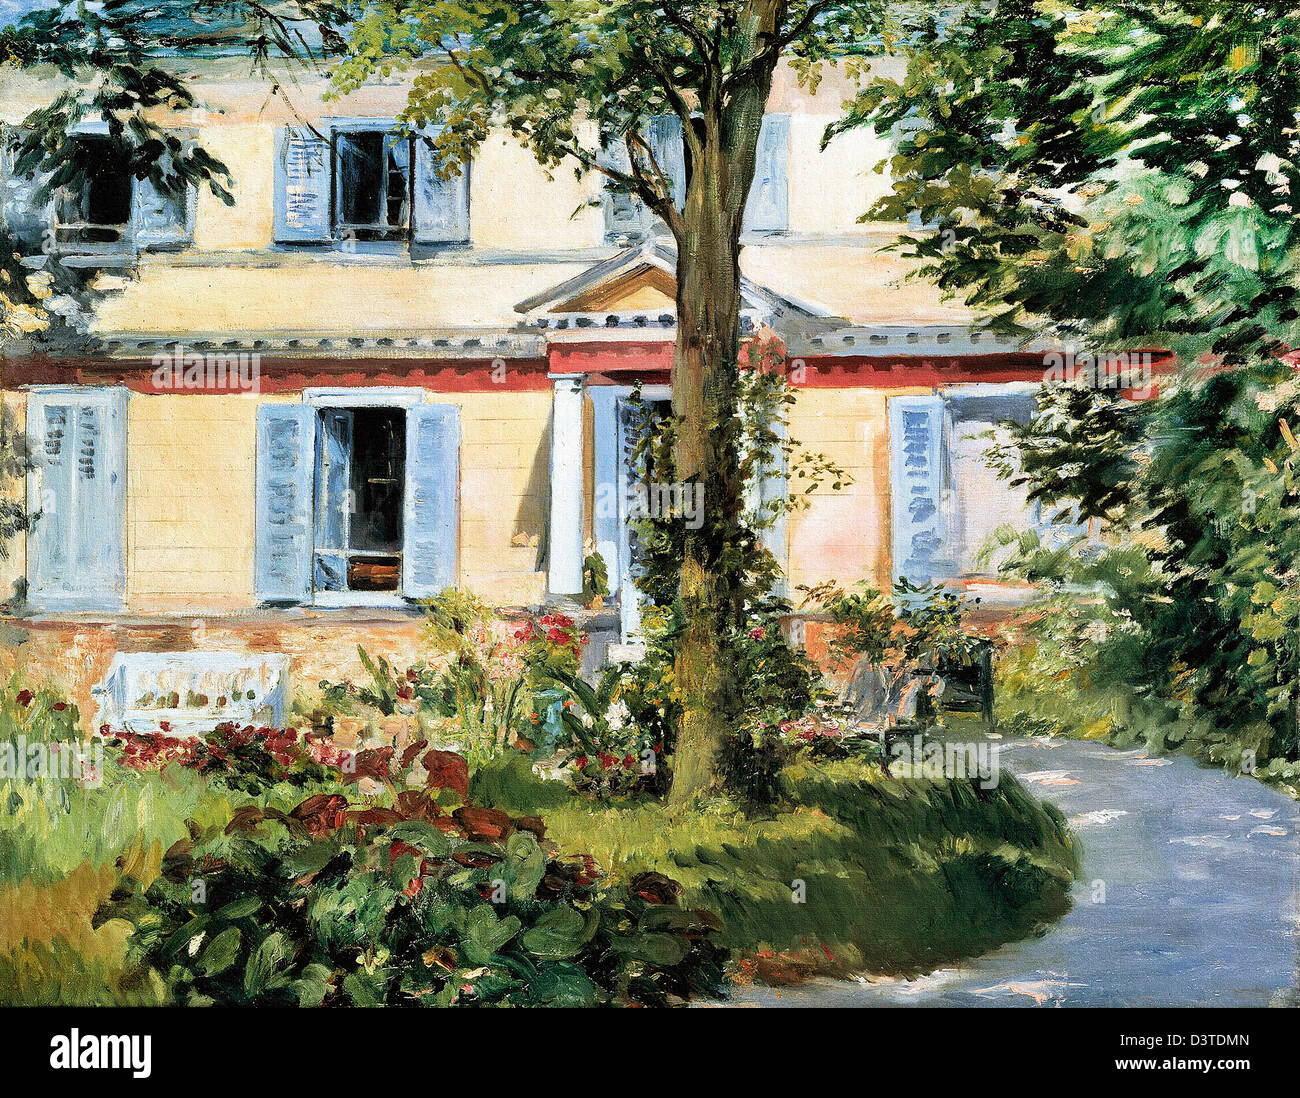 Edouard Manet, The House at Rueil 1882 Oil on canvas. Alte Nationalgalerie, Berlin - Stock Image